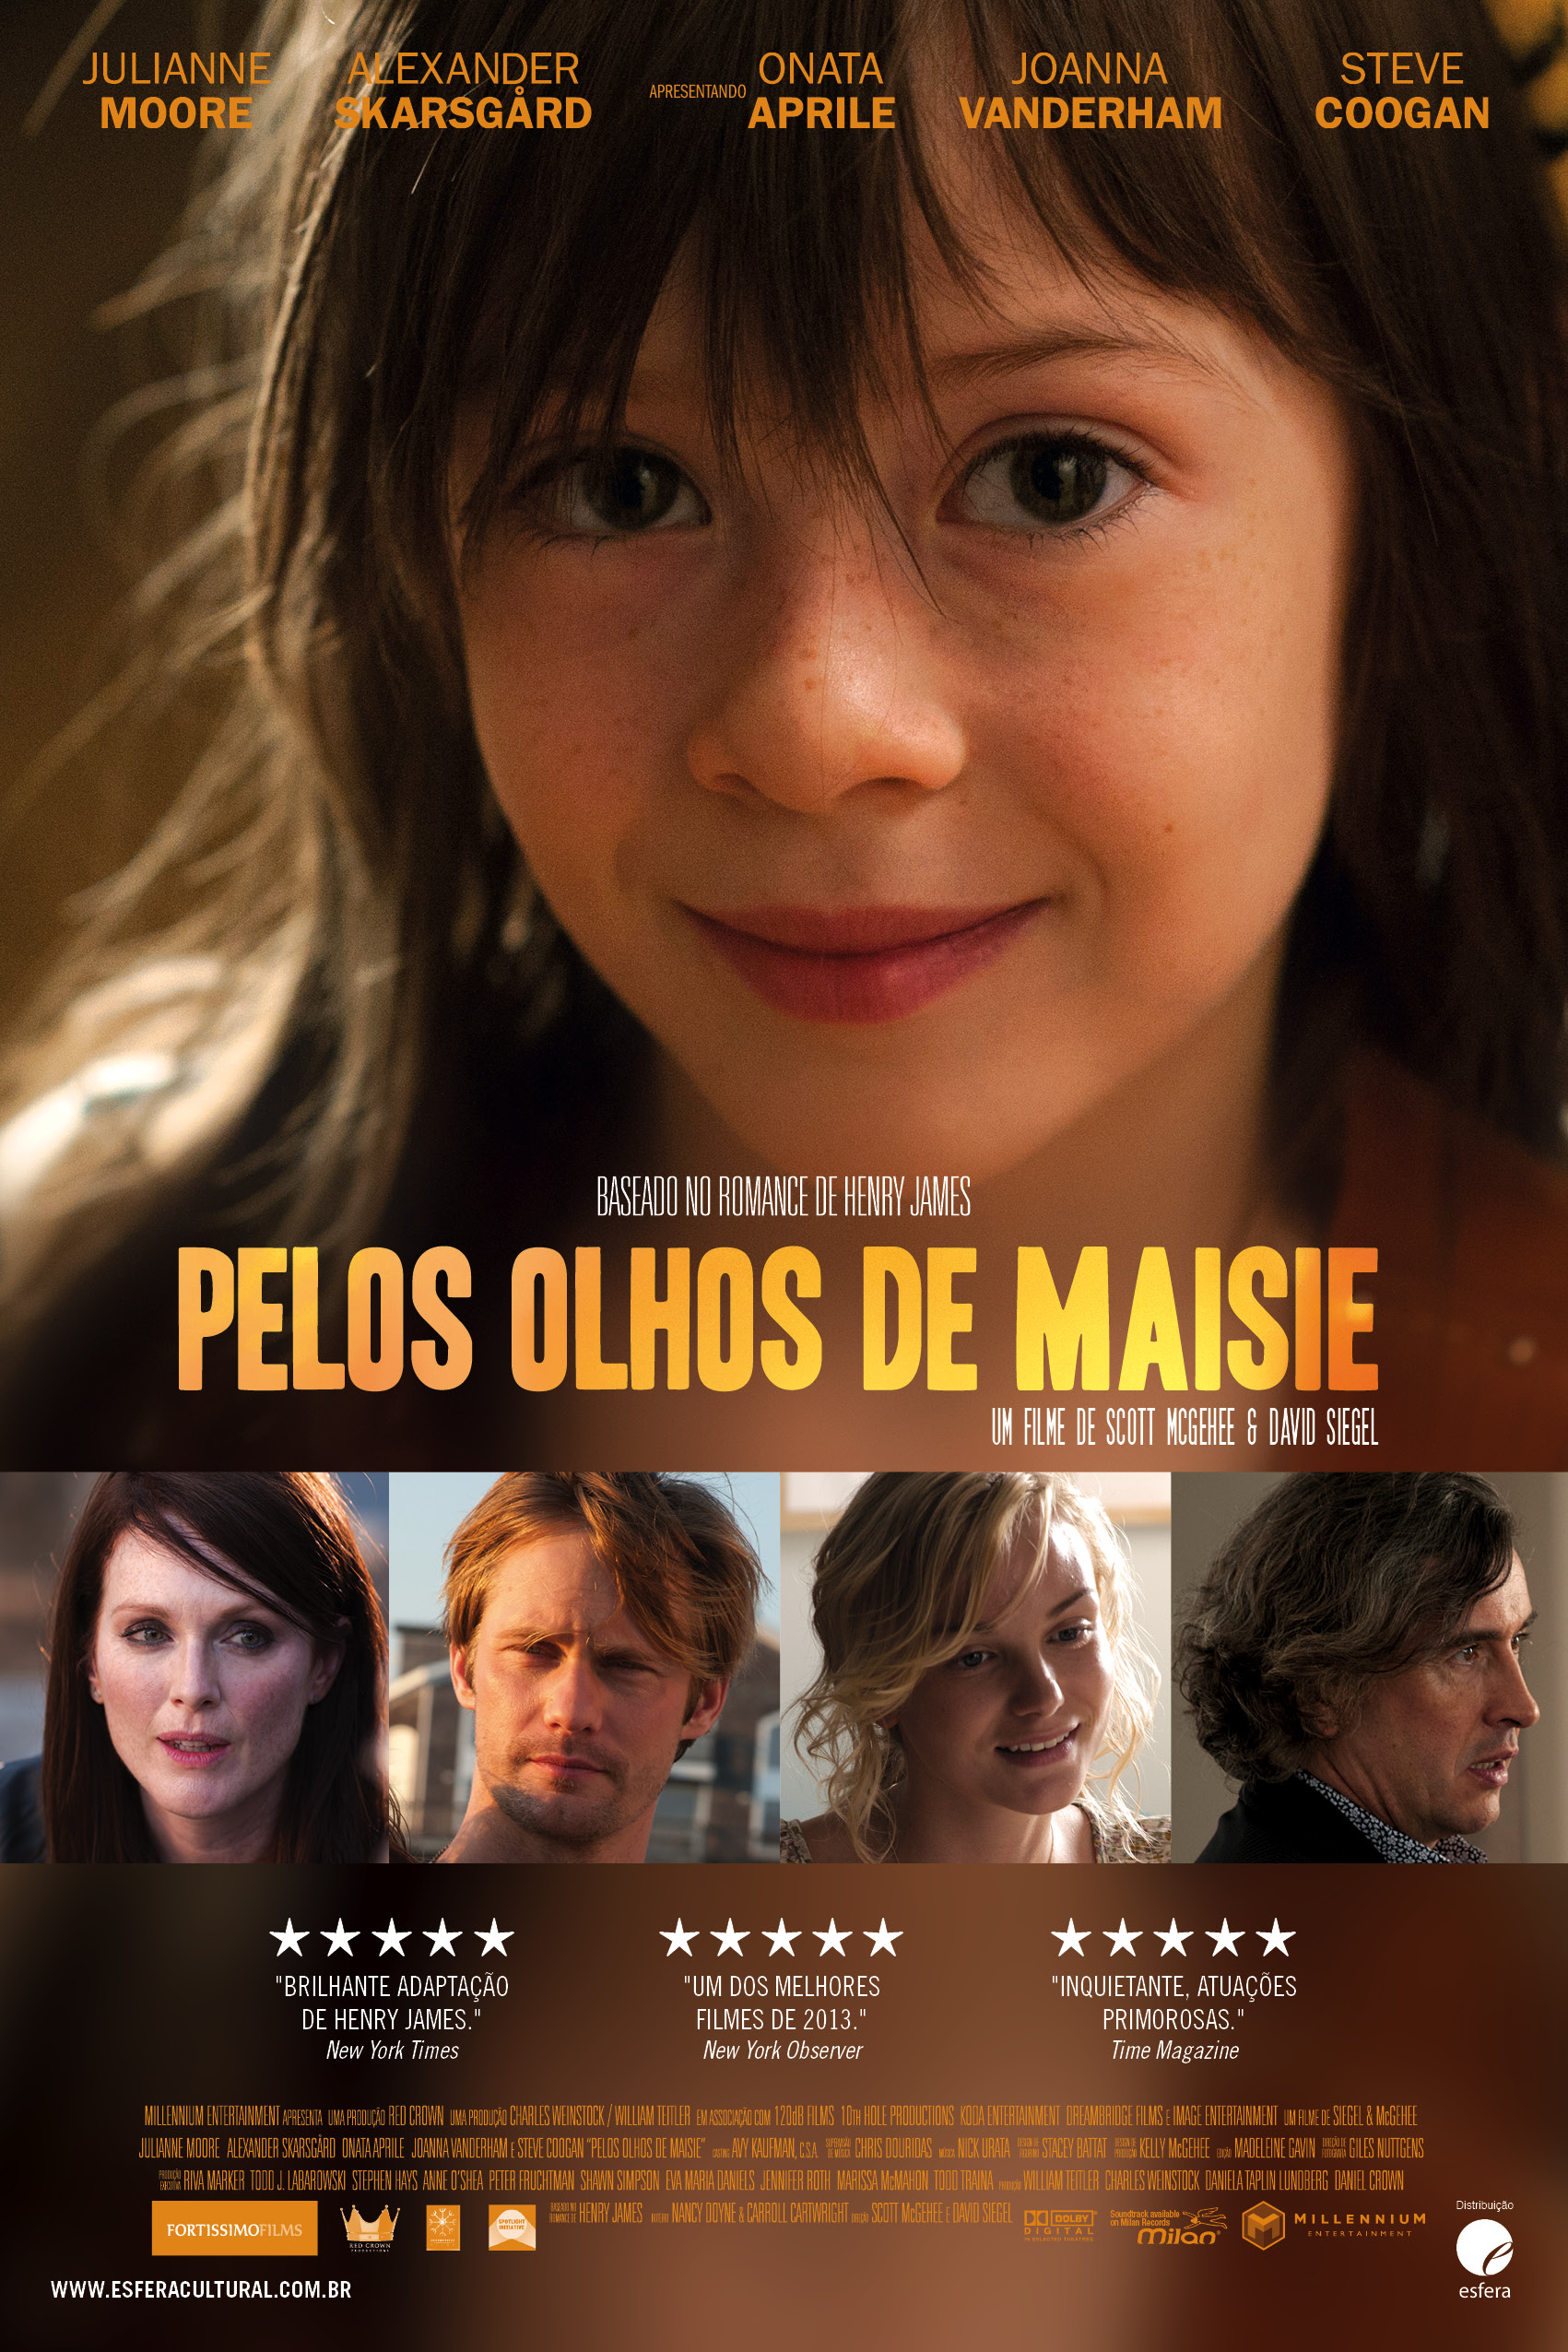 What Maisie Knew-Official Poster Banner PROMO POSTER NACIONAL-02DEZEMBRO2013